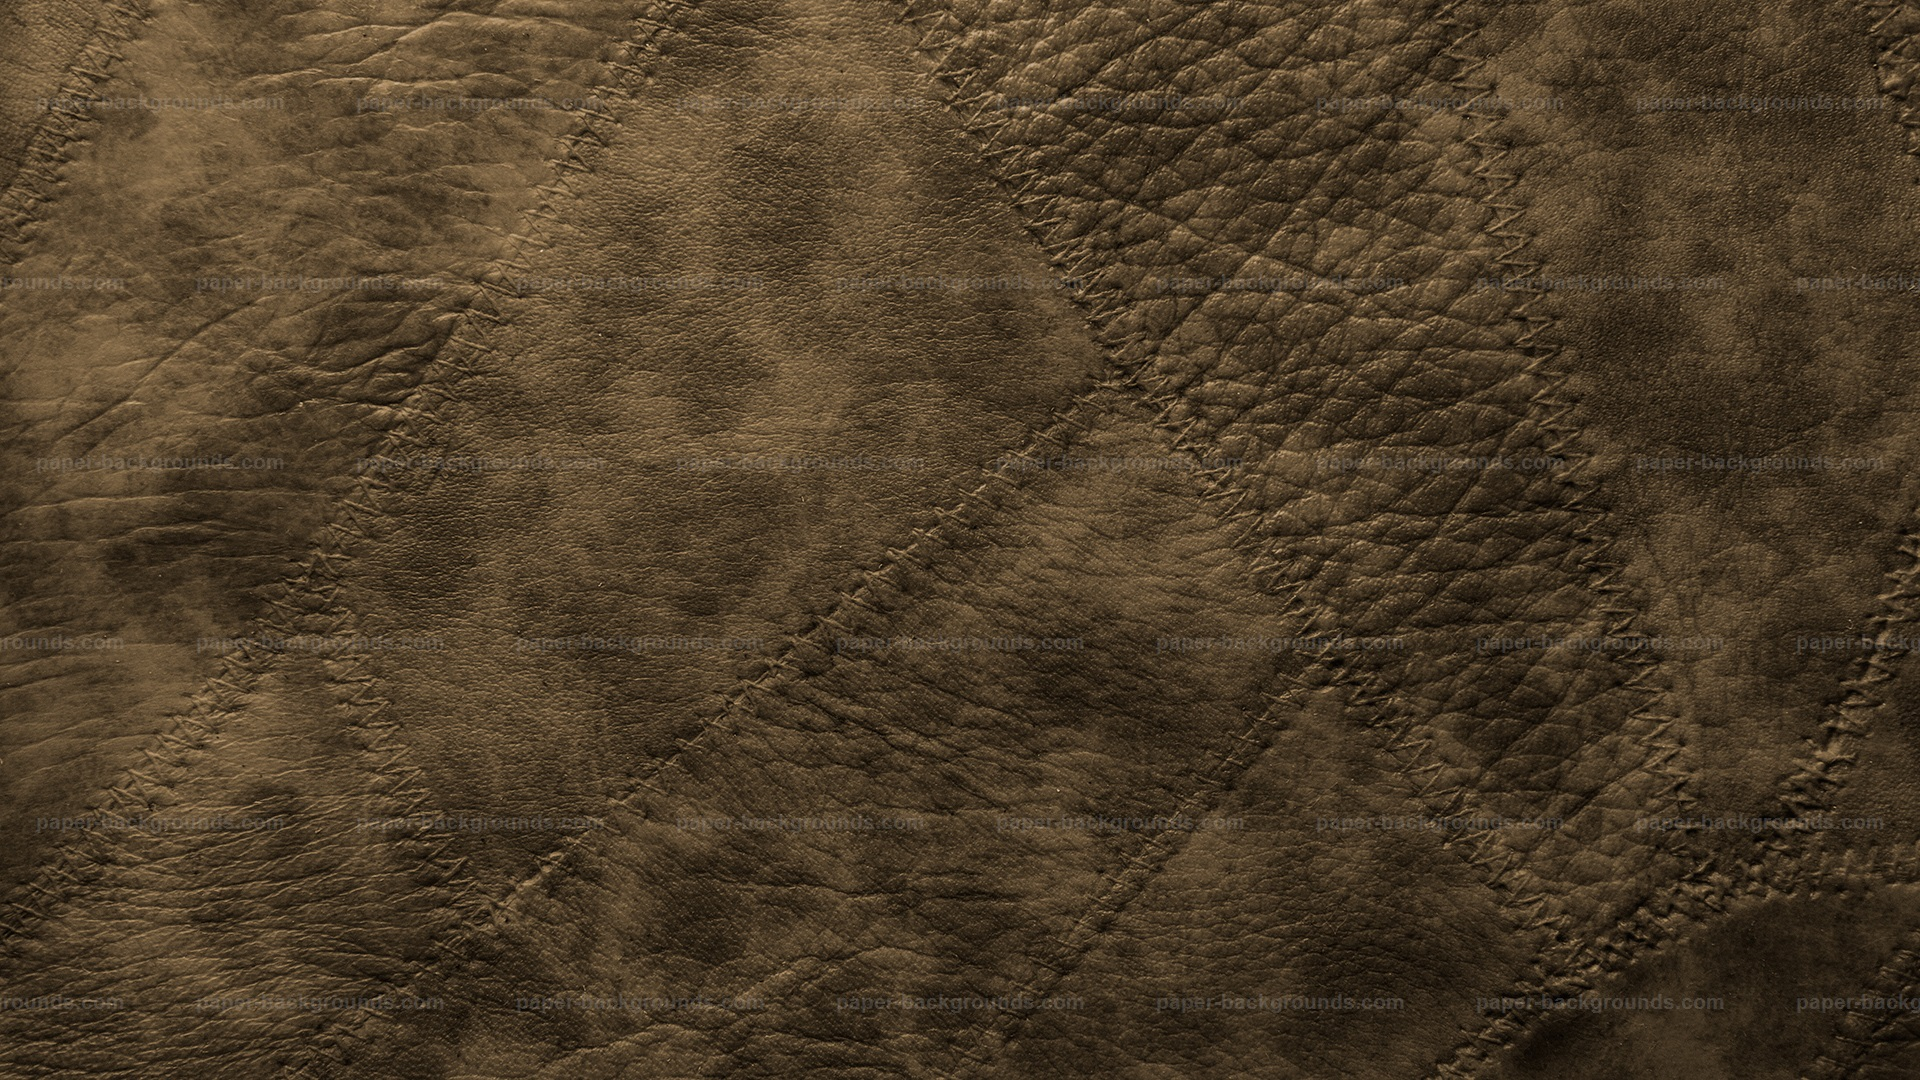 Brown Stitched Leather Patches Background HD